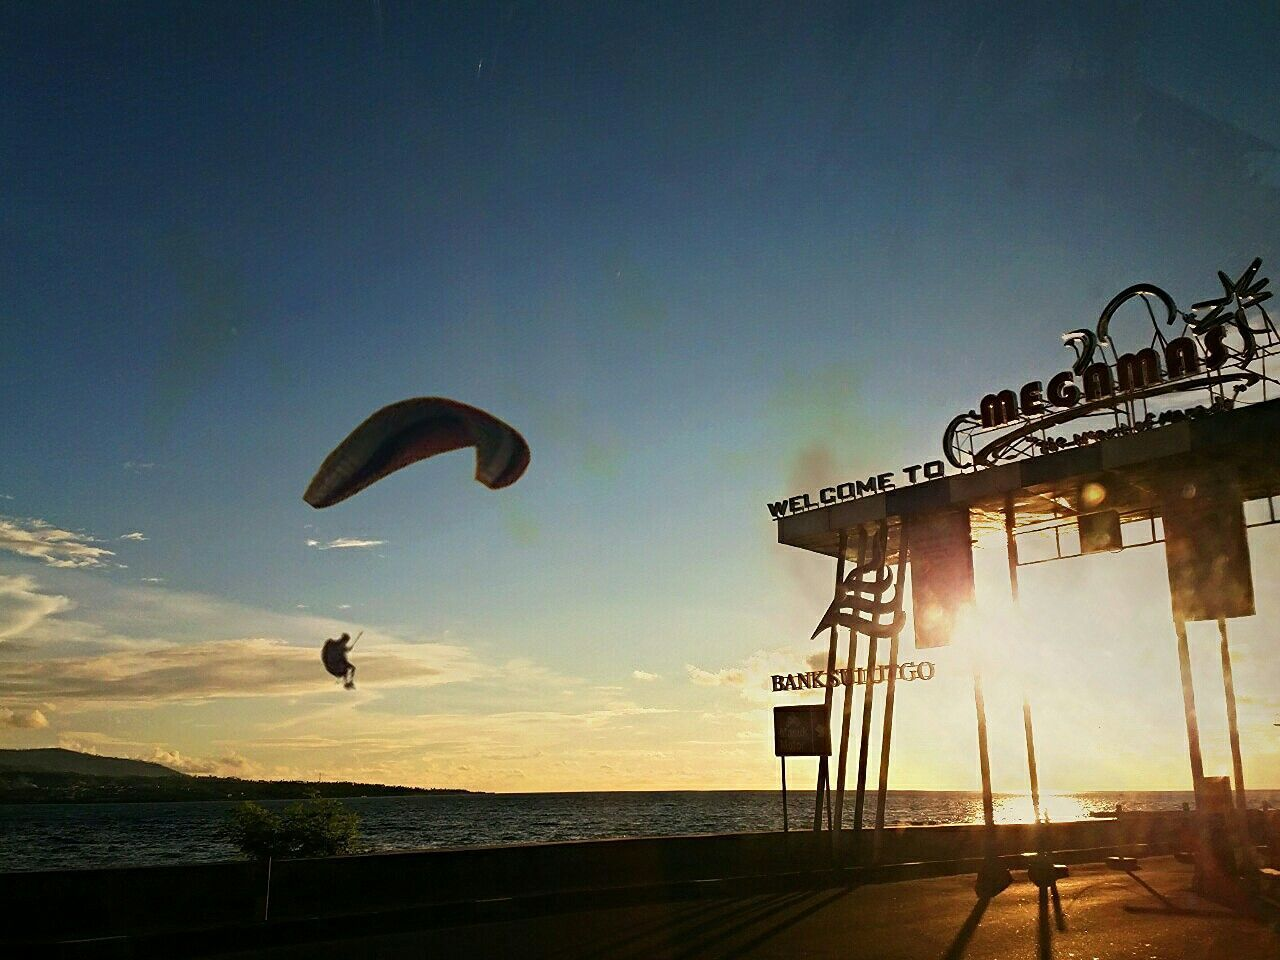 """Cut And Paste """" random exposure"""" Extreme Sports Outdoors Silhouette City View  Boulevard Wonderful Indonesia Beauty In Nature Dramatic Sky Exposure Sunset"""